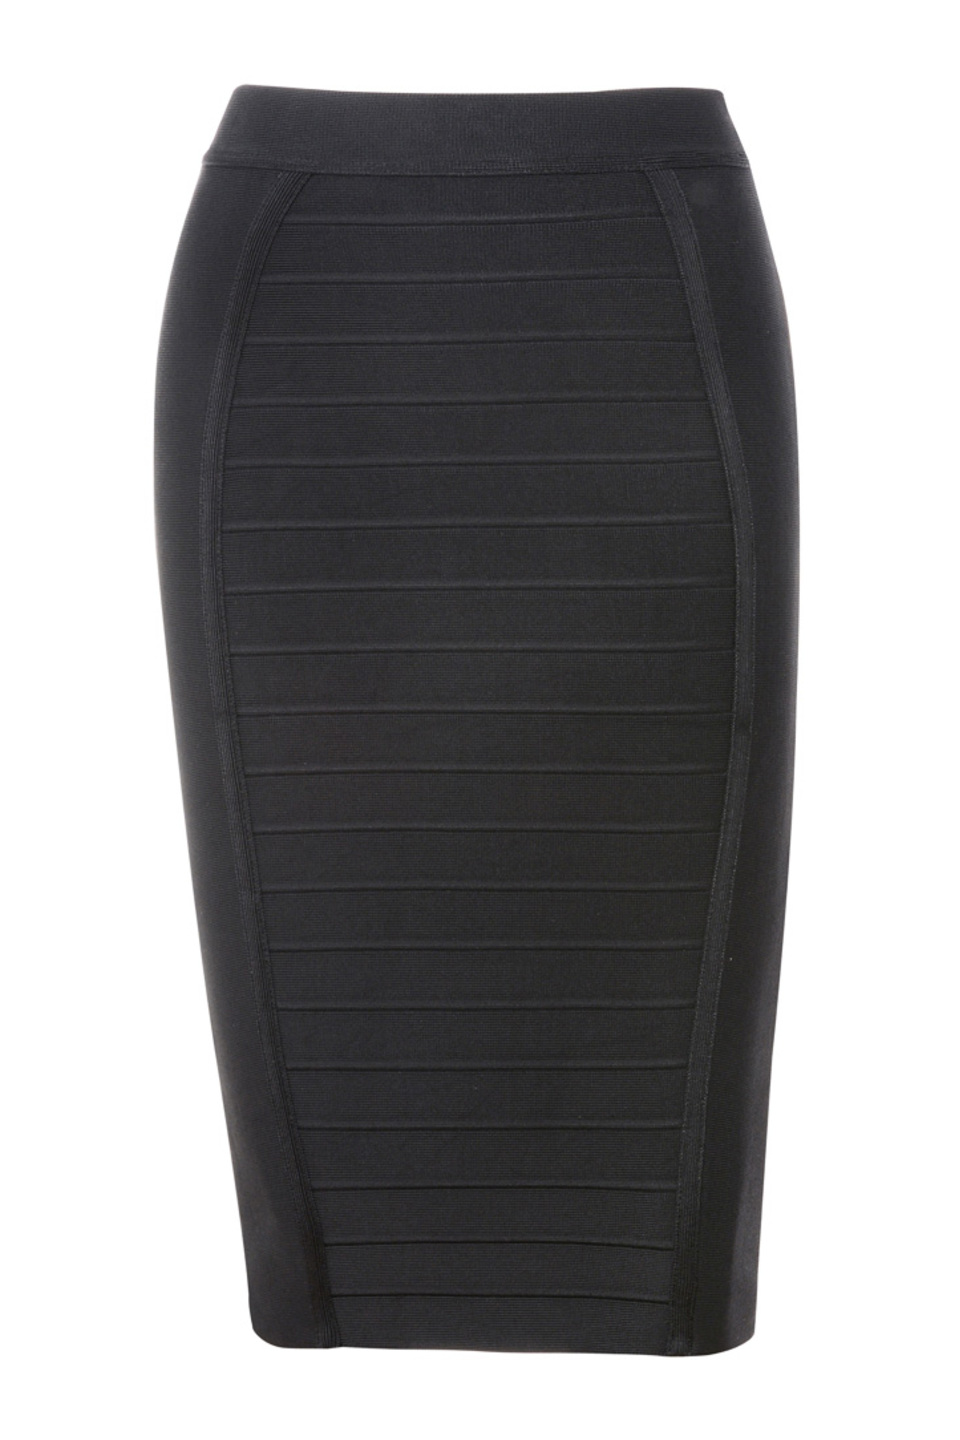 Sorcha Black Knee Length Bandage Pencil Skirt